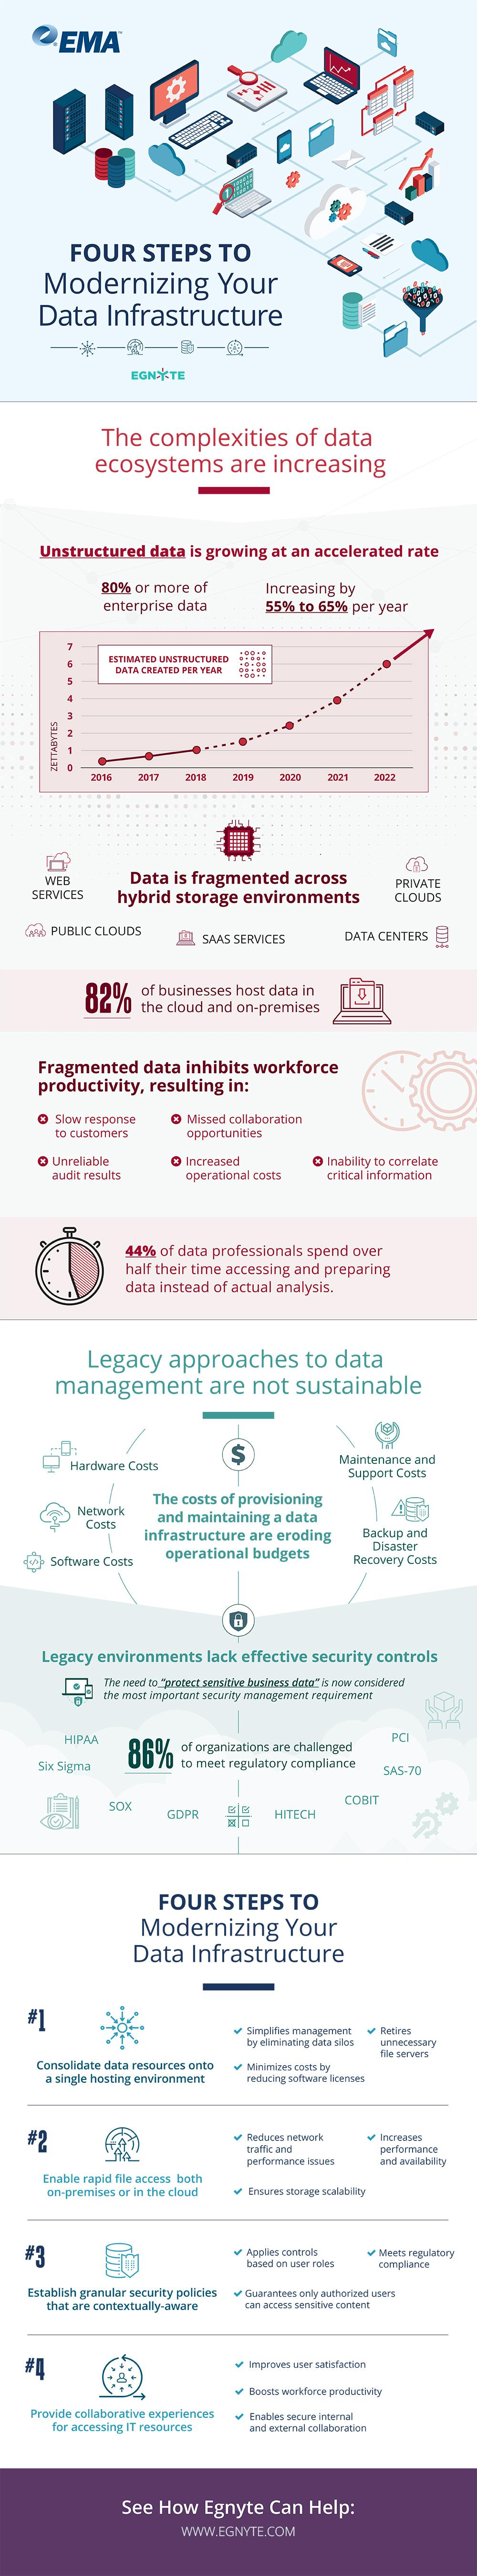 Infographic - Four Steps To Modernizing Your Data Infrastructure